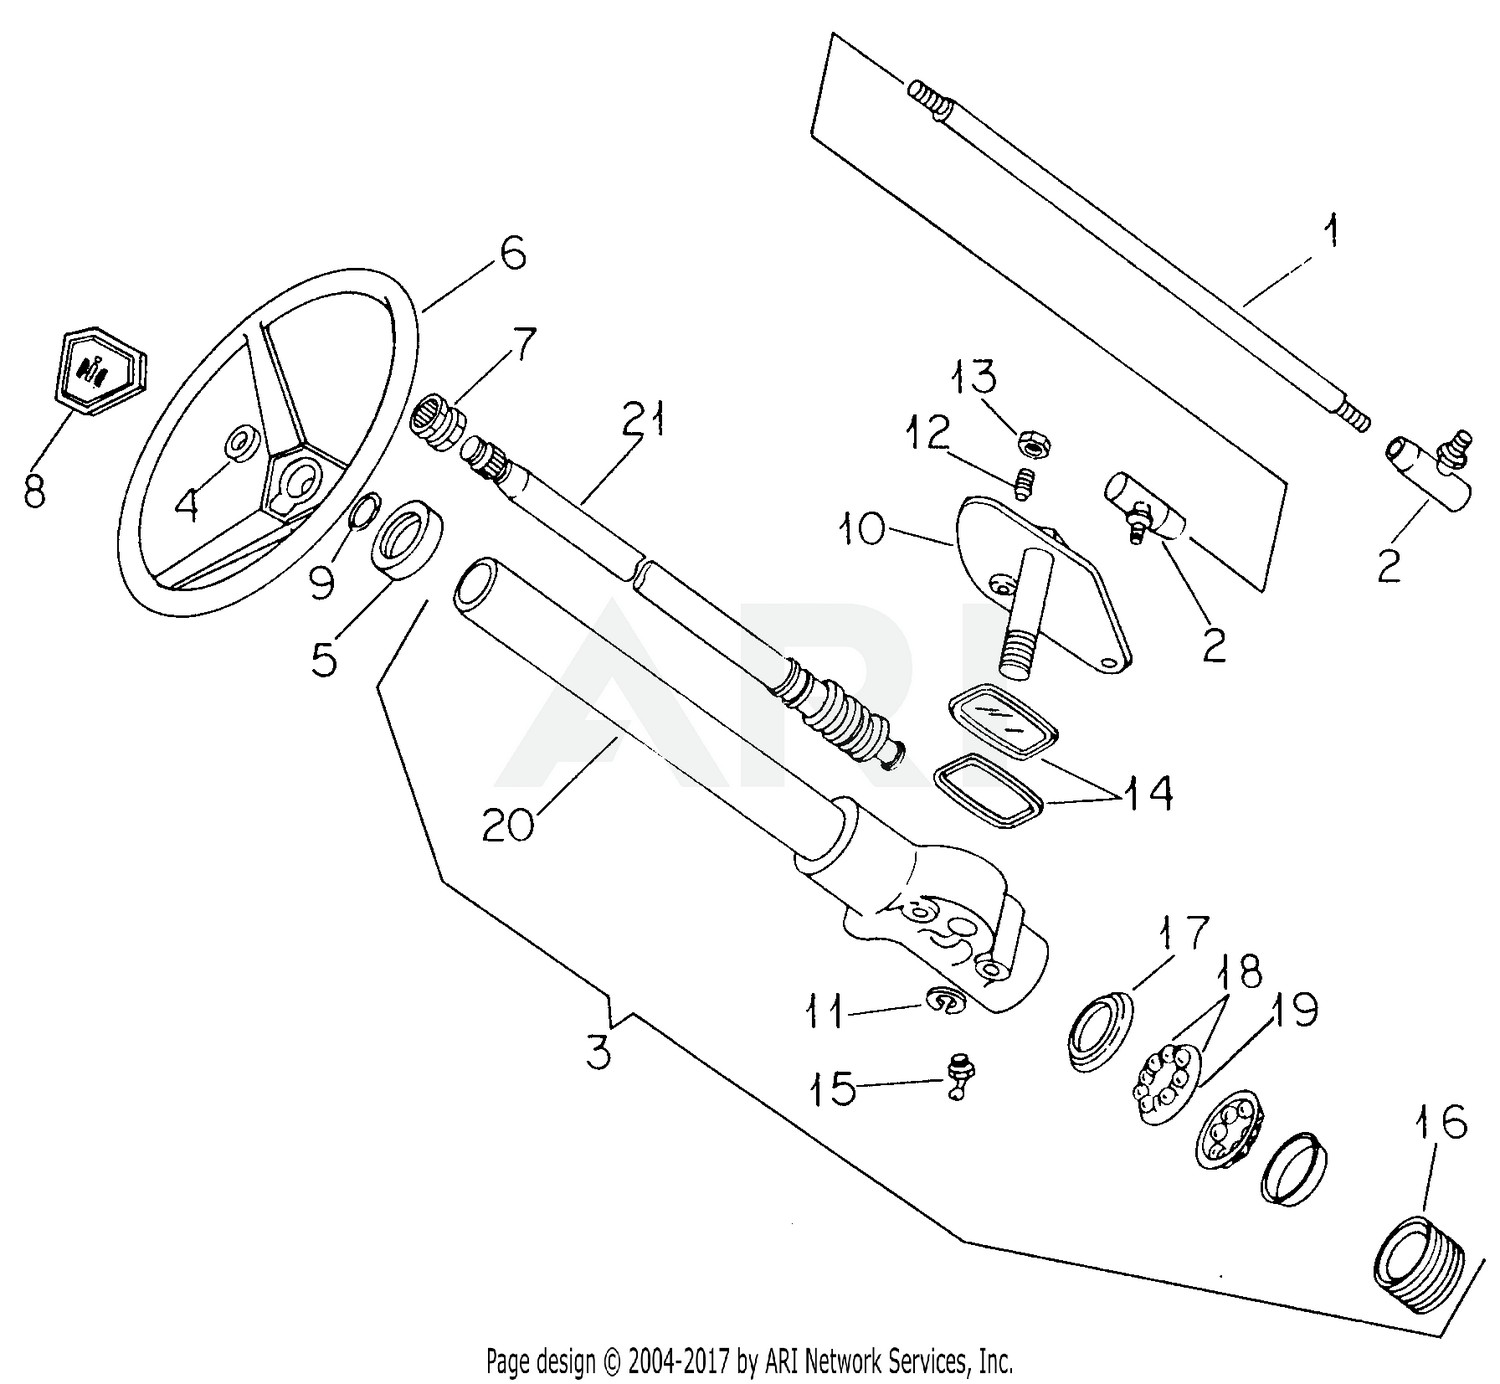 Diagram Of Car Parts Exterior Cub Cadet Parts Diagrams Cub Cadet 1100 U Mechanical Steering Of Diagram Of Car Parts Exterior